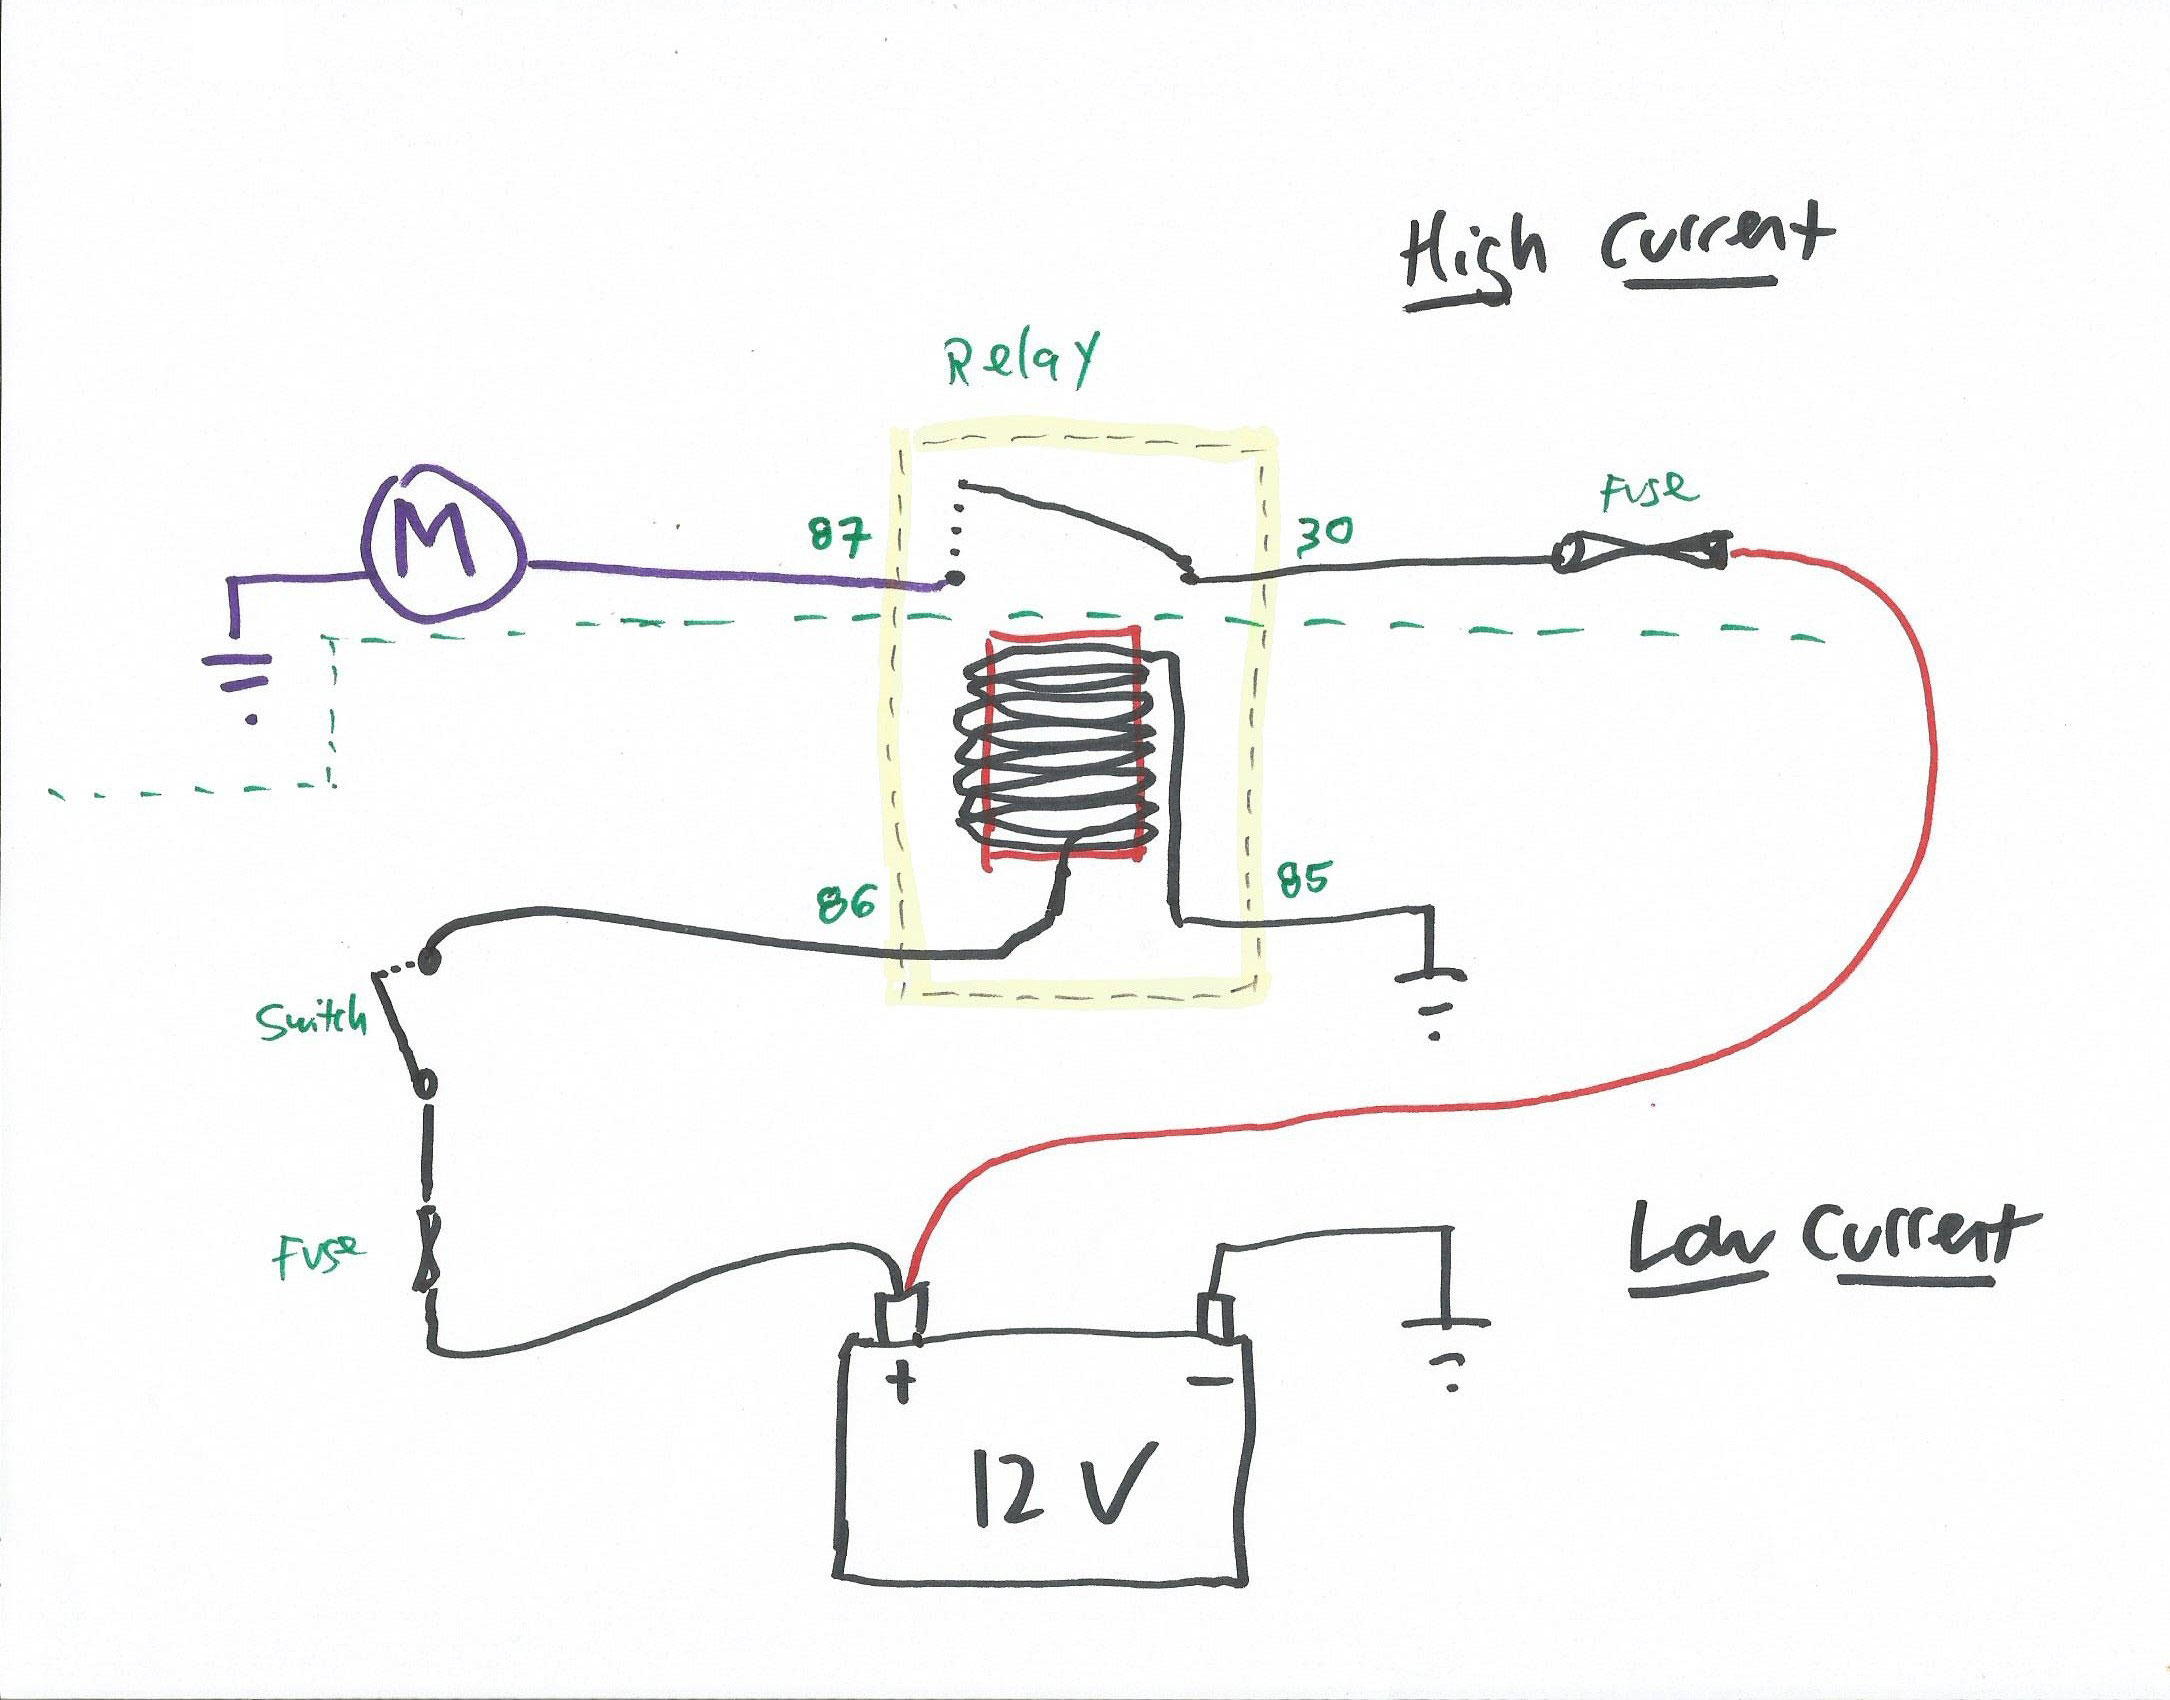 4 pole relay wiring diagram understanding relays  part 3 troubleshooting hagerty media  understanding relays  part 3